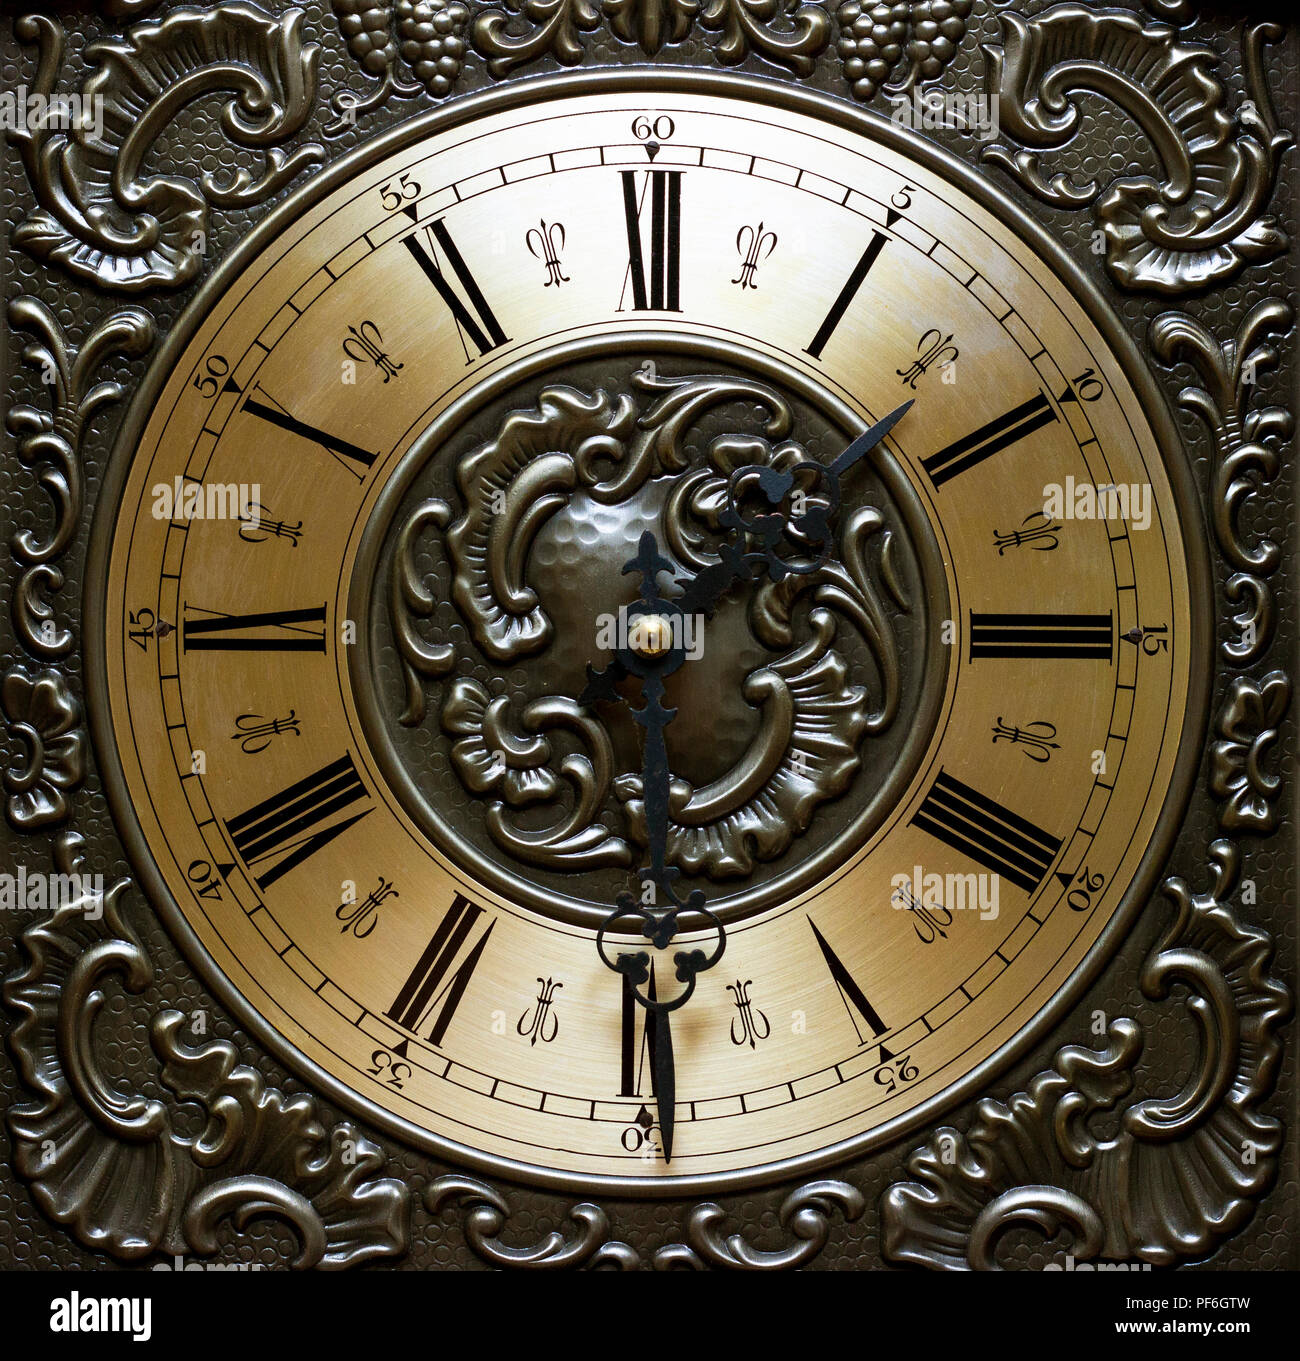 Time Concept Old Clock Watch Dial Stock Photo 215889209